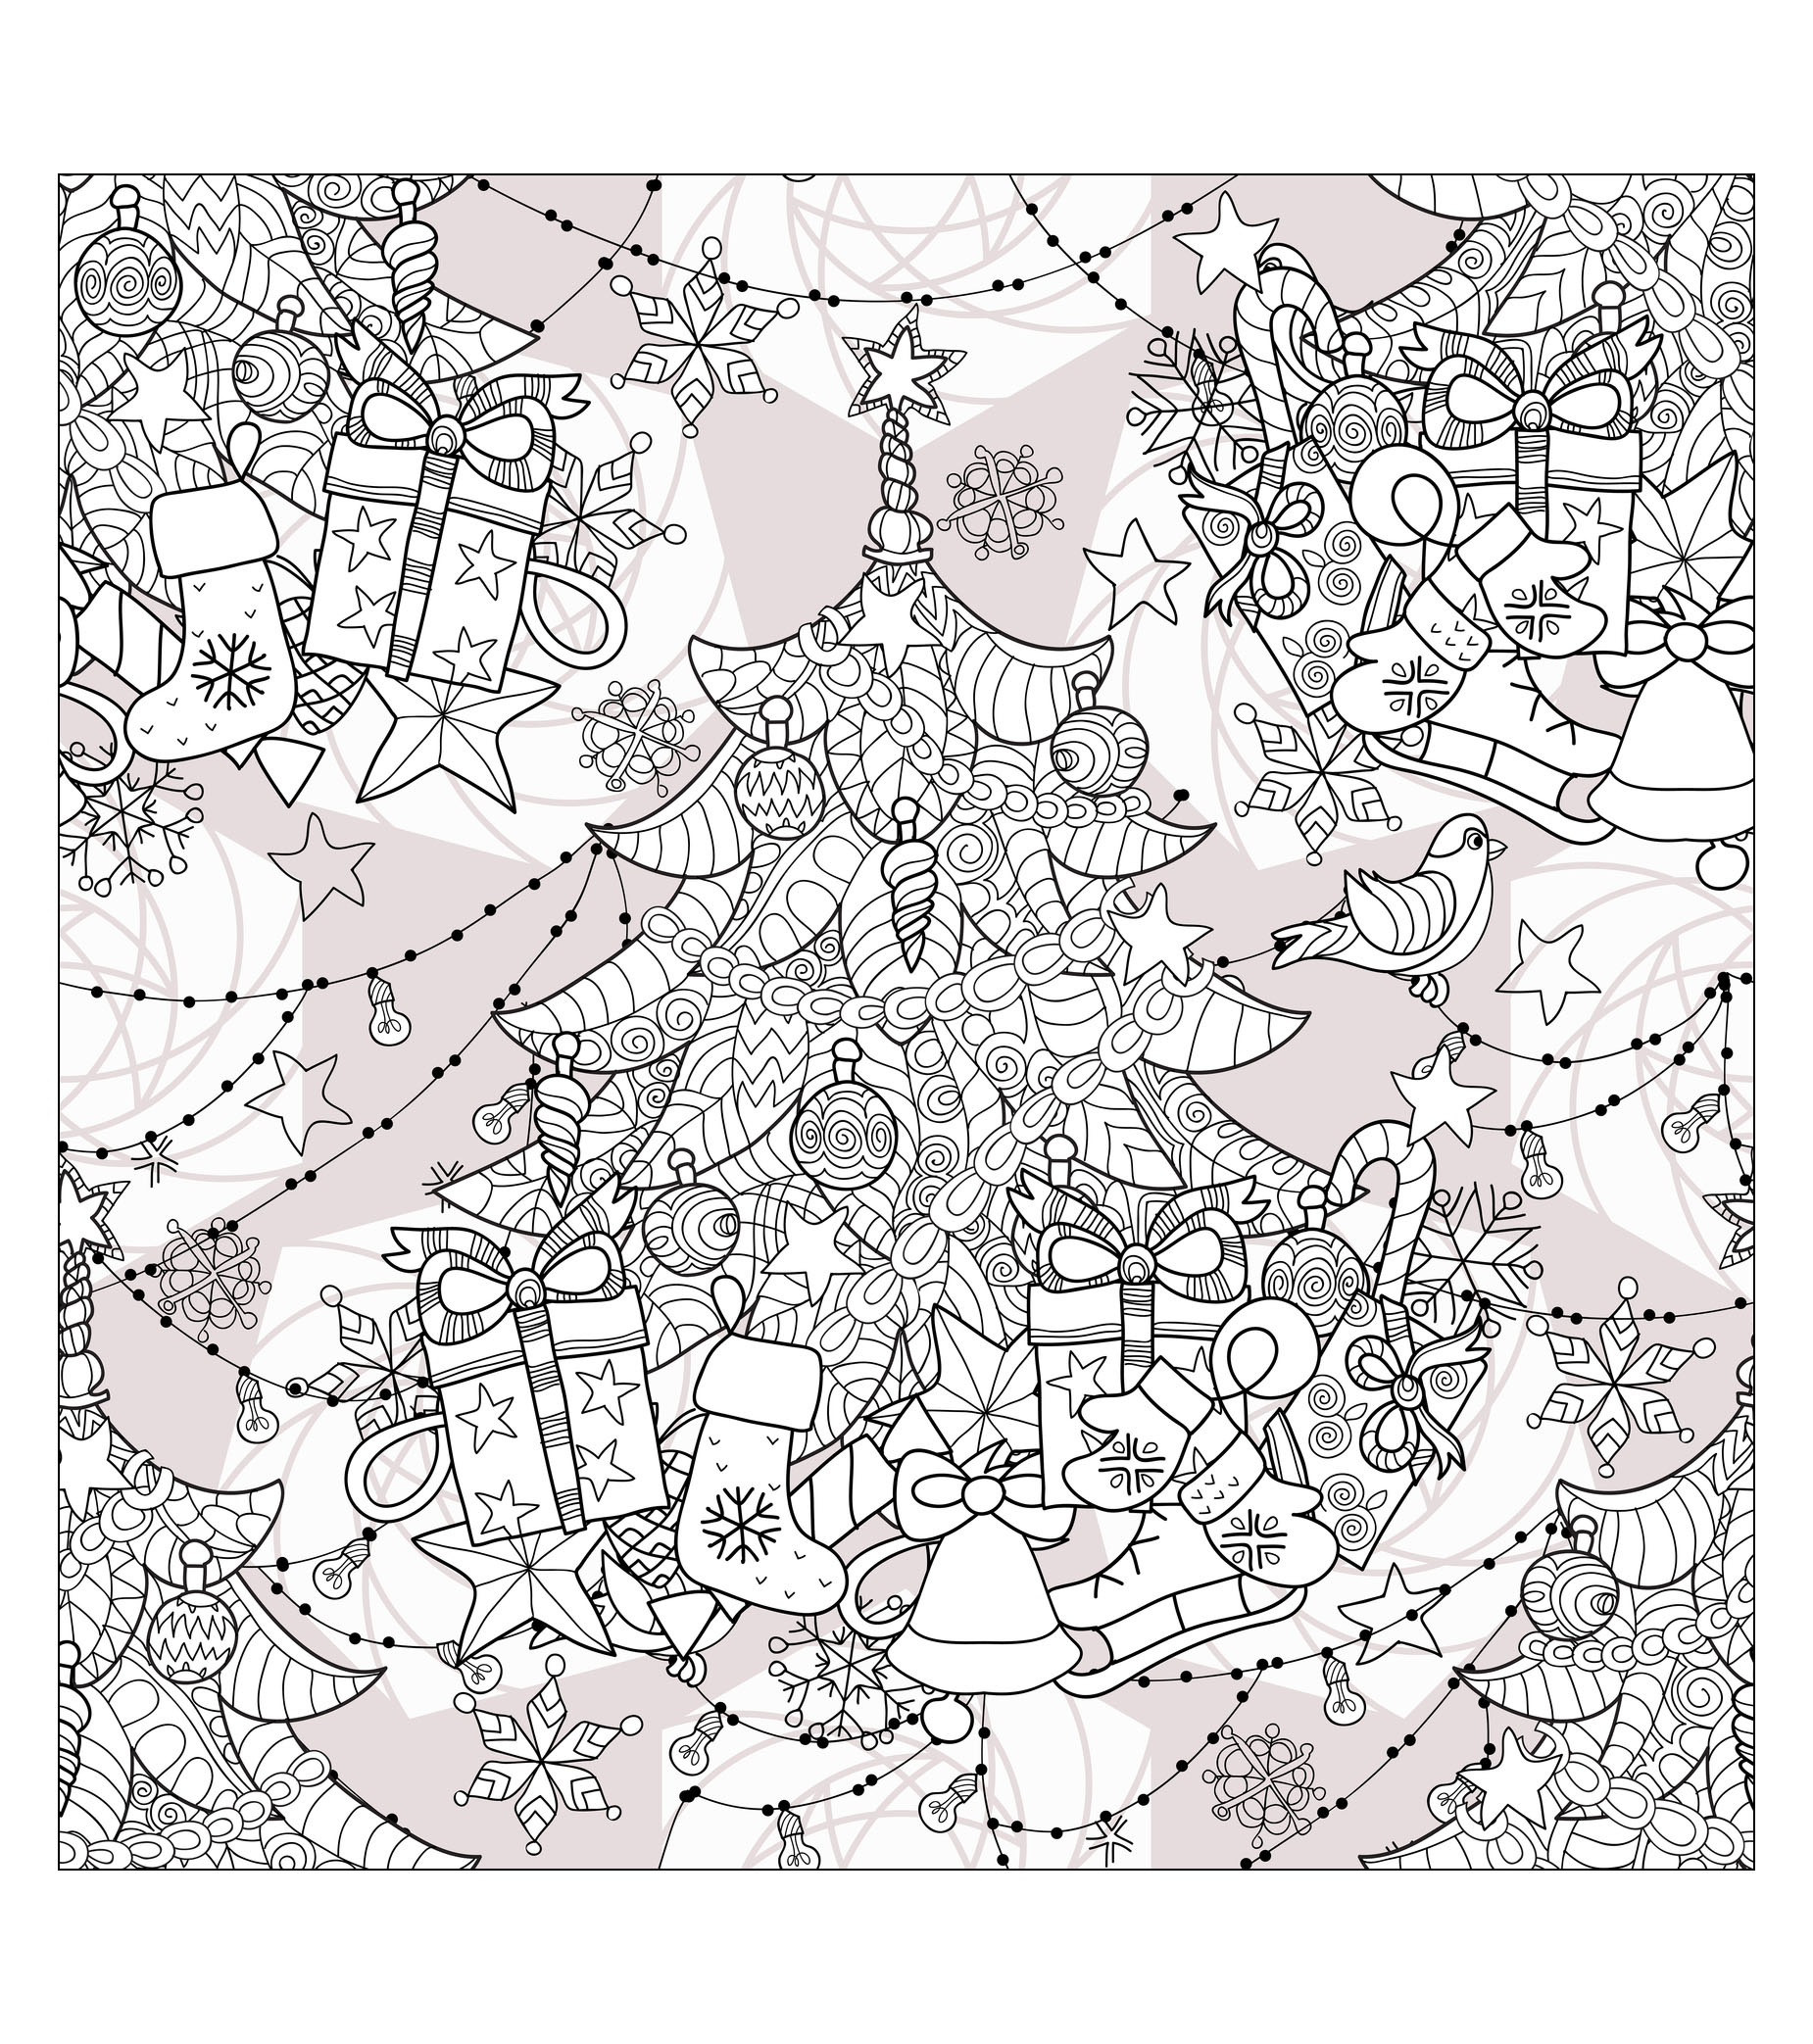 Coloring pages for adults tree - Tree With Christmas Lights Coloring Pages Christmas Treefrom The Gallery Events Irina Yazeva Source 123rf